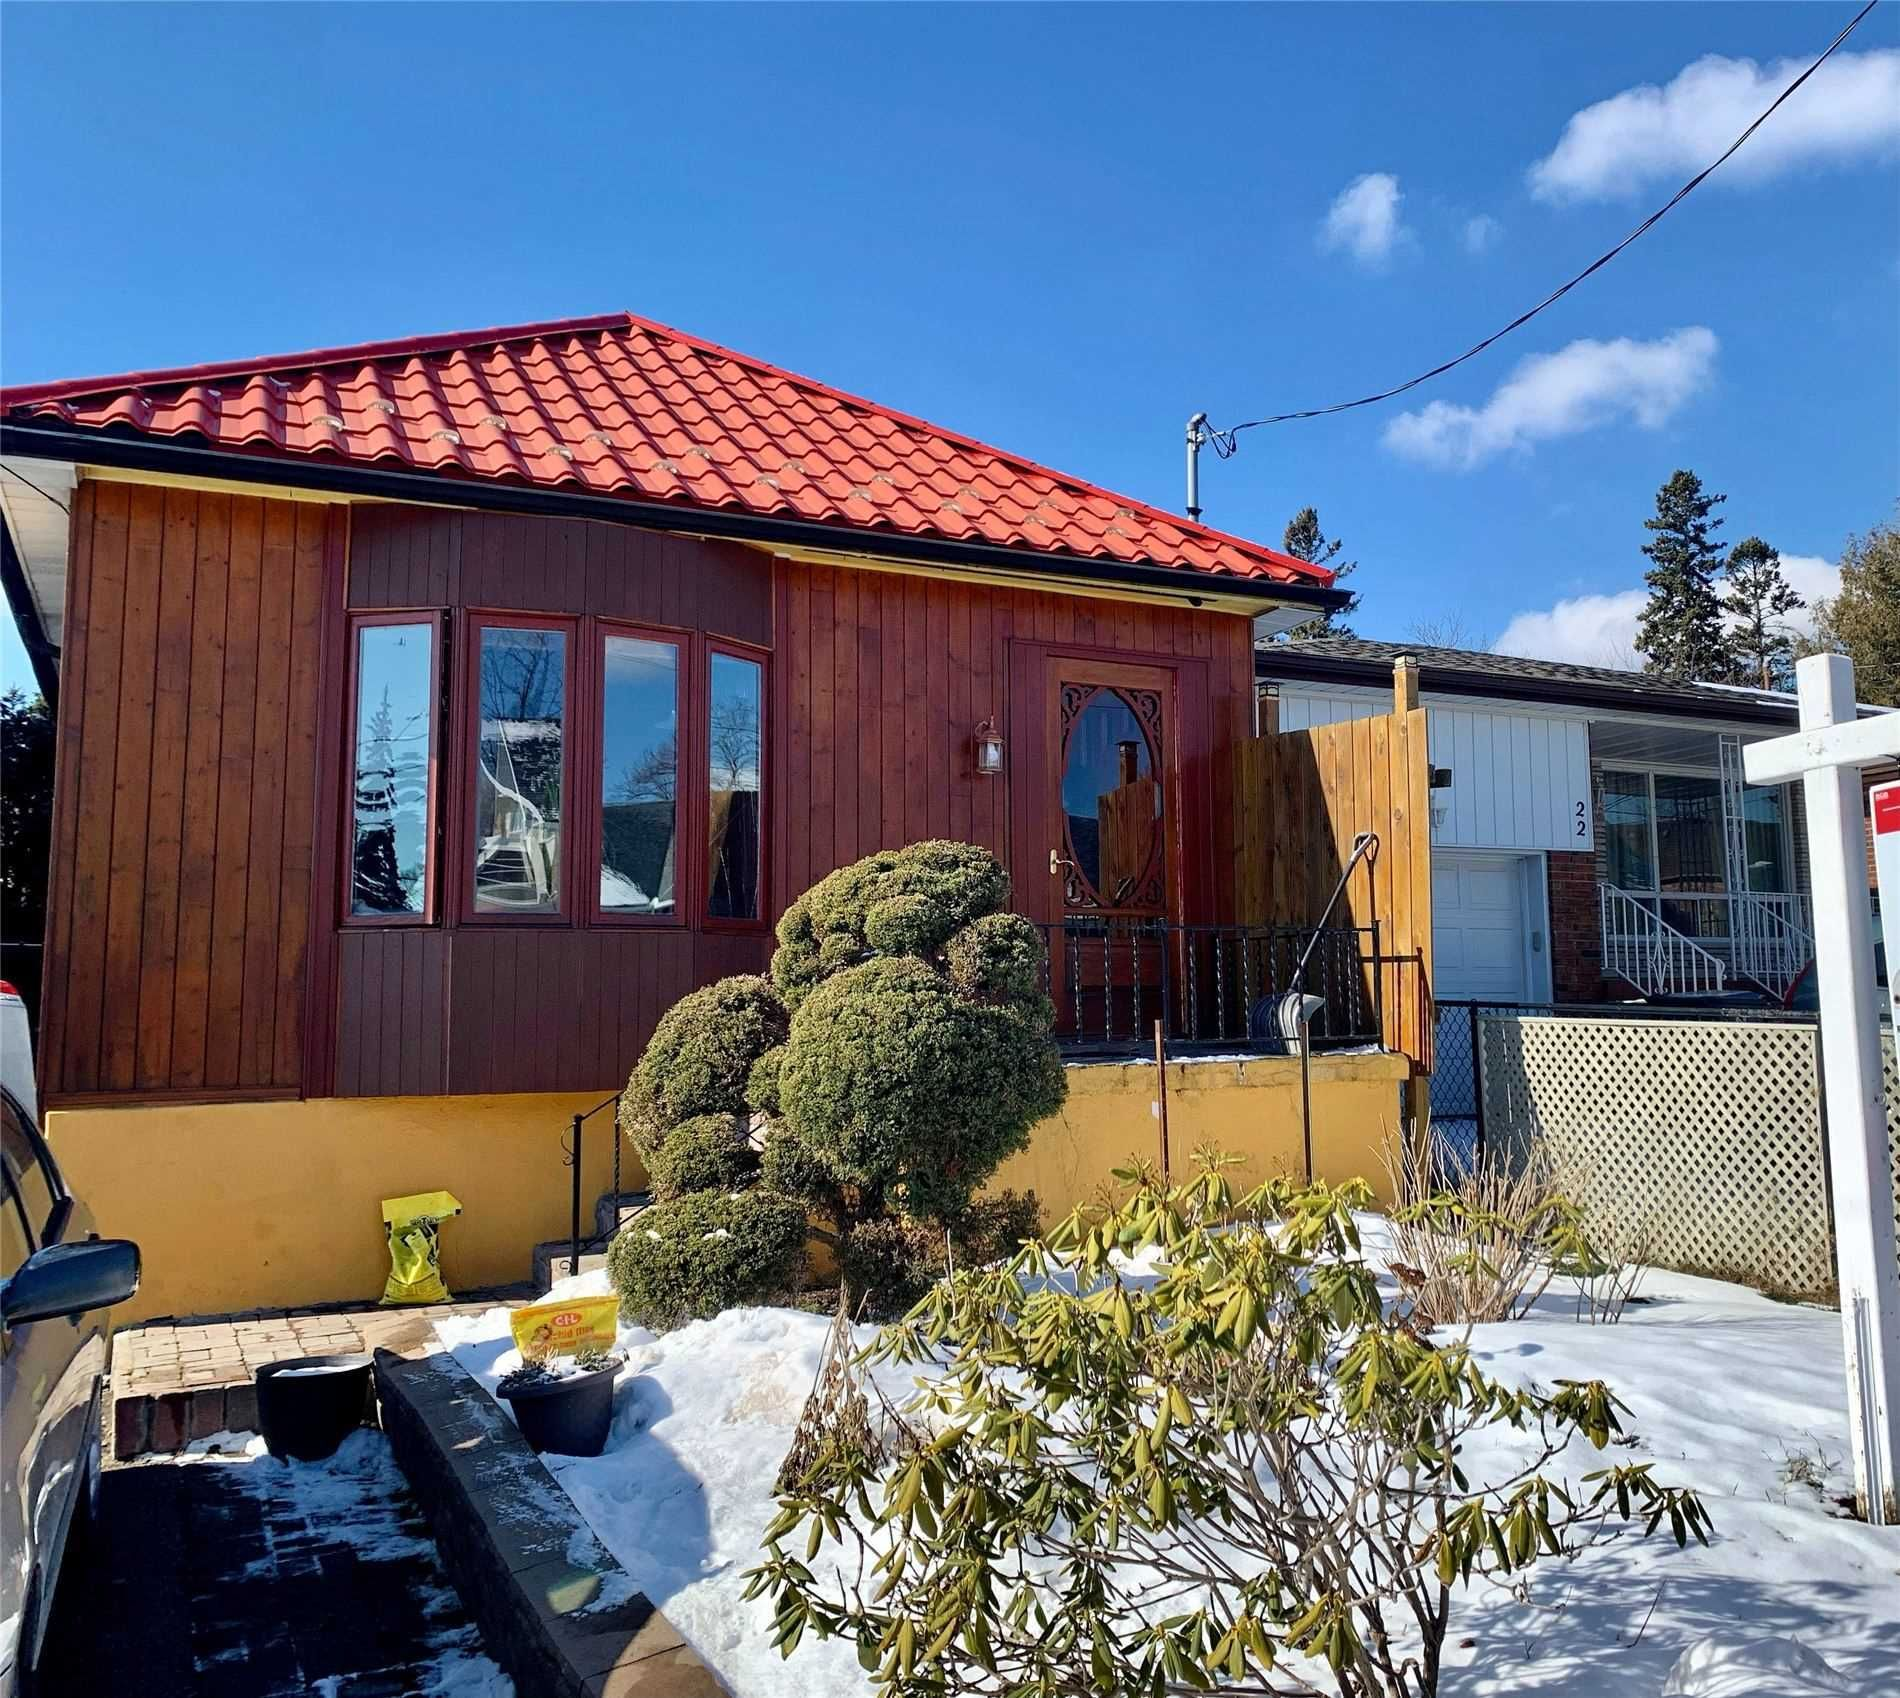 Main Photo: 20 Sandown Avenue in Toronto: Birchcliffe-Cliffside House (Bungalow) for sale (Toronto E06)  : MLS®# E5113987